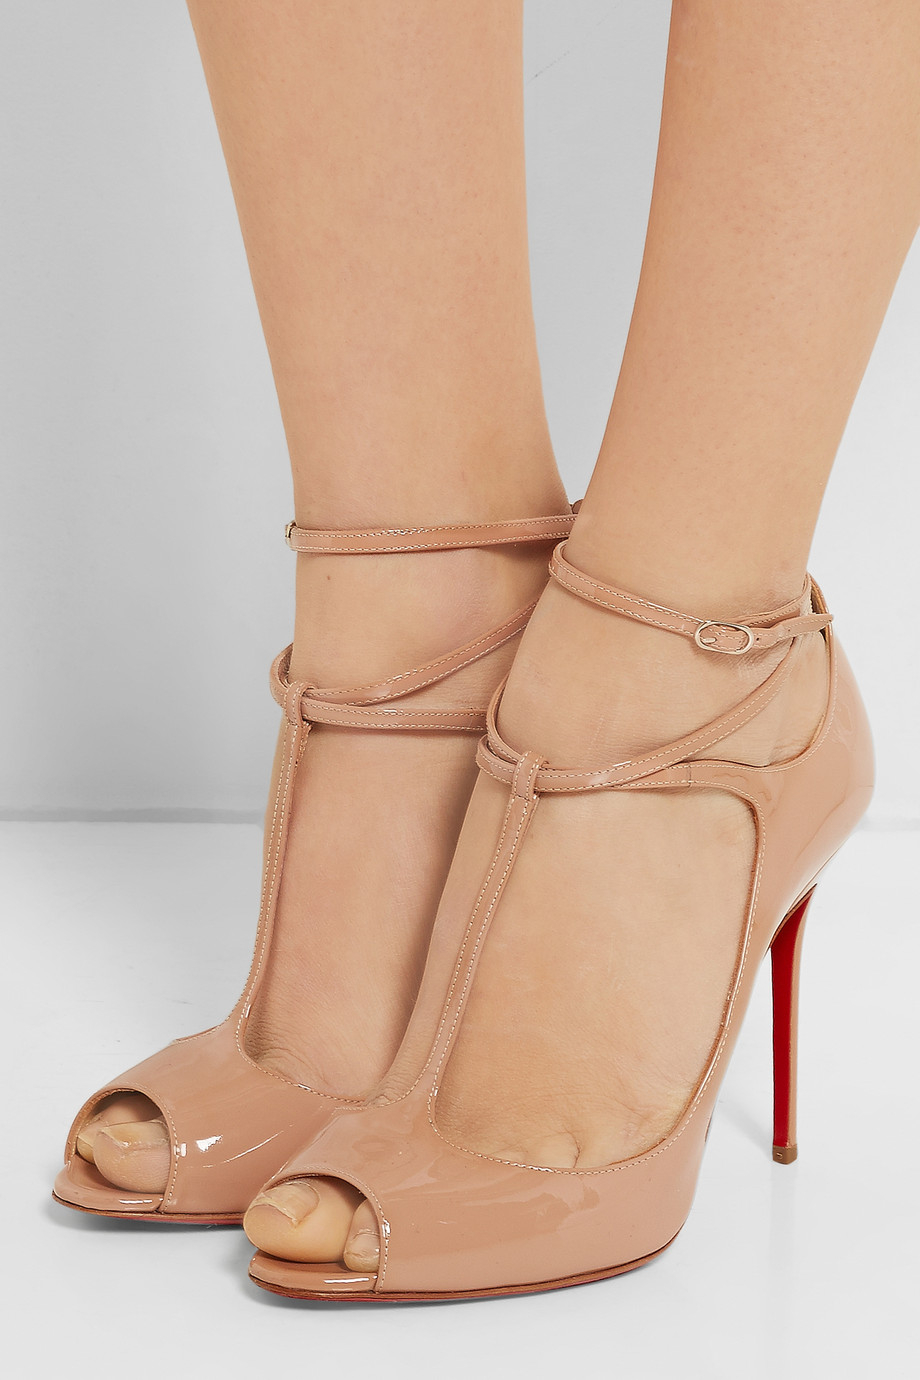 9d3d3fc0fc42 ... 50% off lyst christian louboutin talitha 100 patent leather pumps in  natural 59231 9ecd5